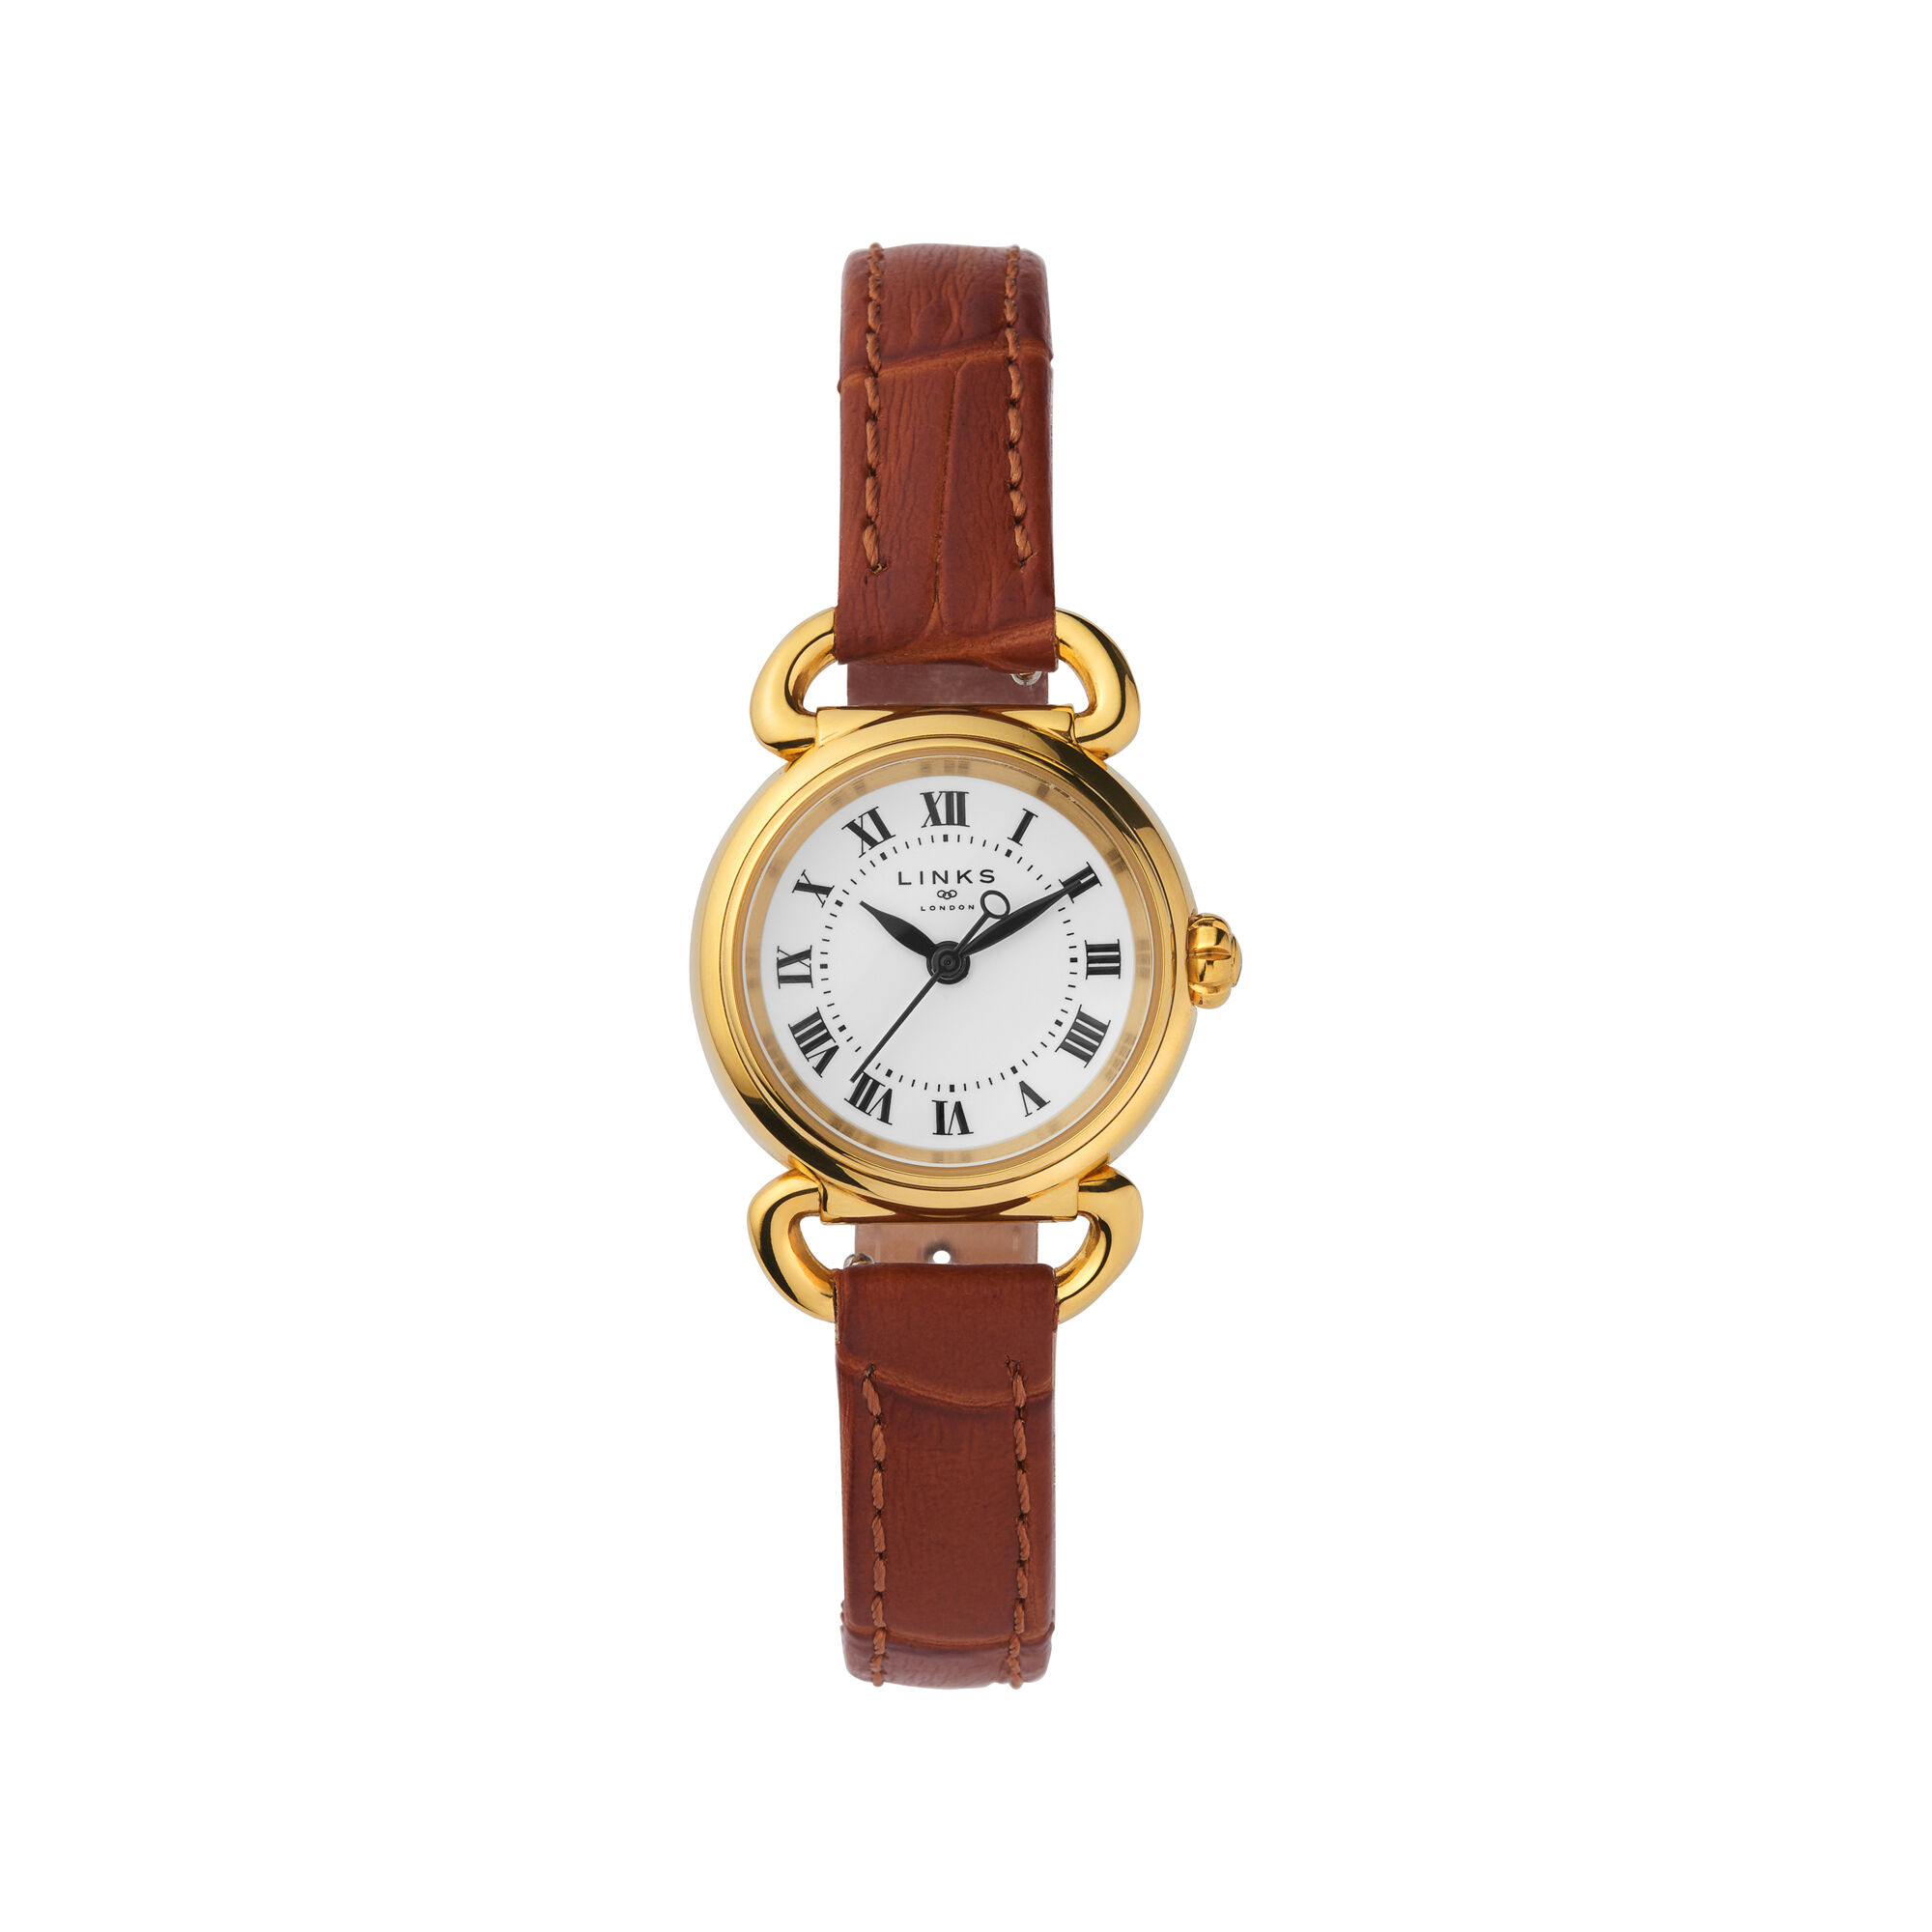 watches casual with s dial cakcity brown analogou leather band dp buy quartz golden watch wrist waterproof men business